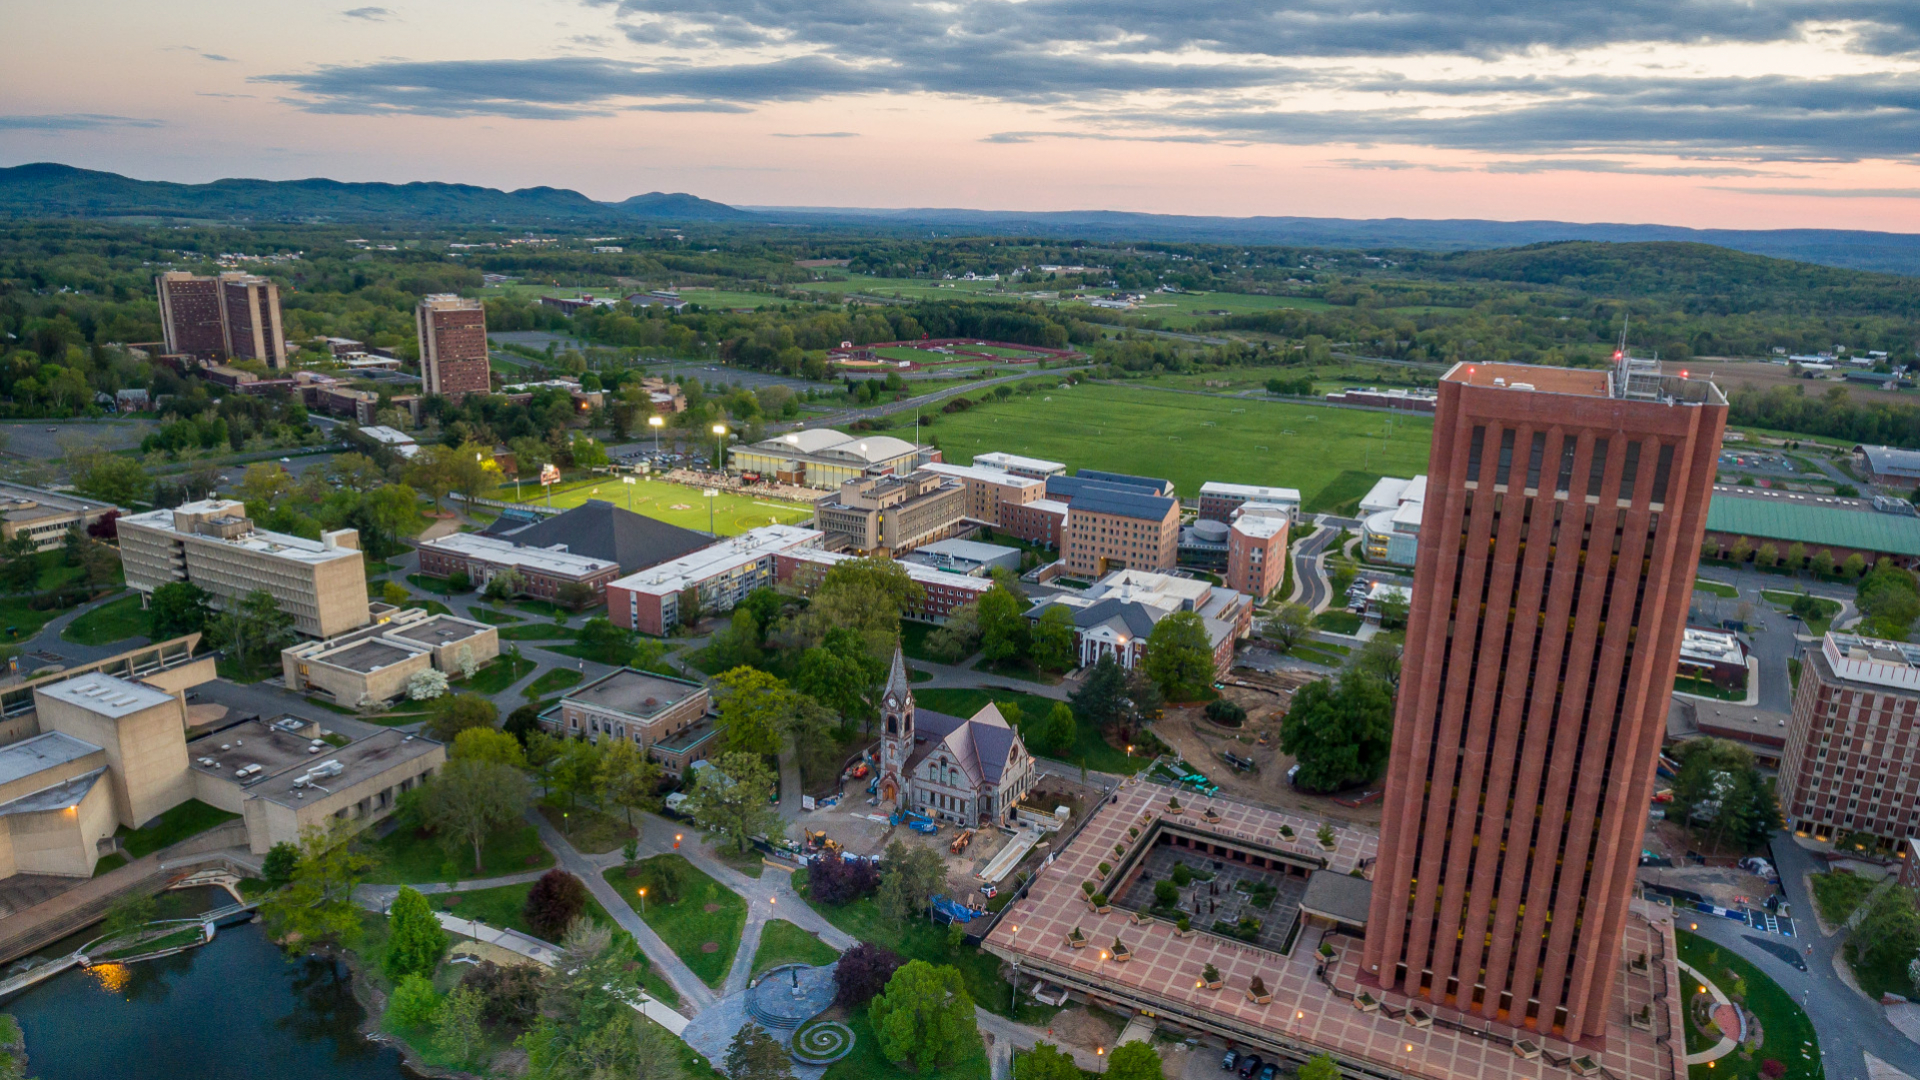 An aerial view of the UMass Amherst campus.